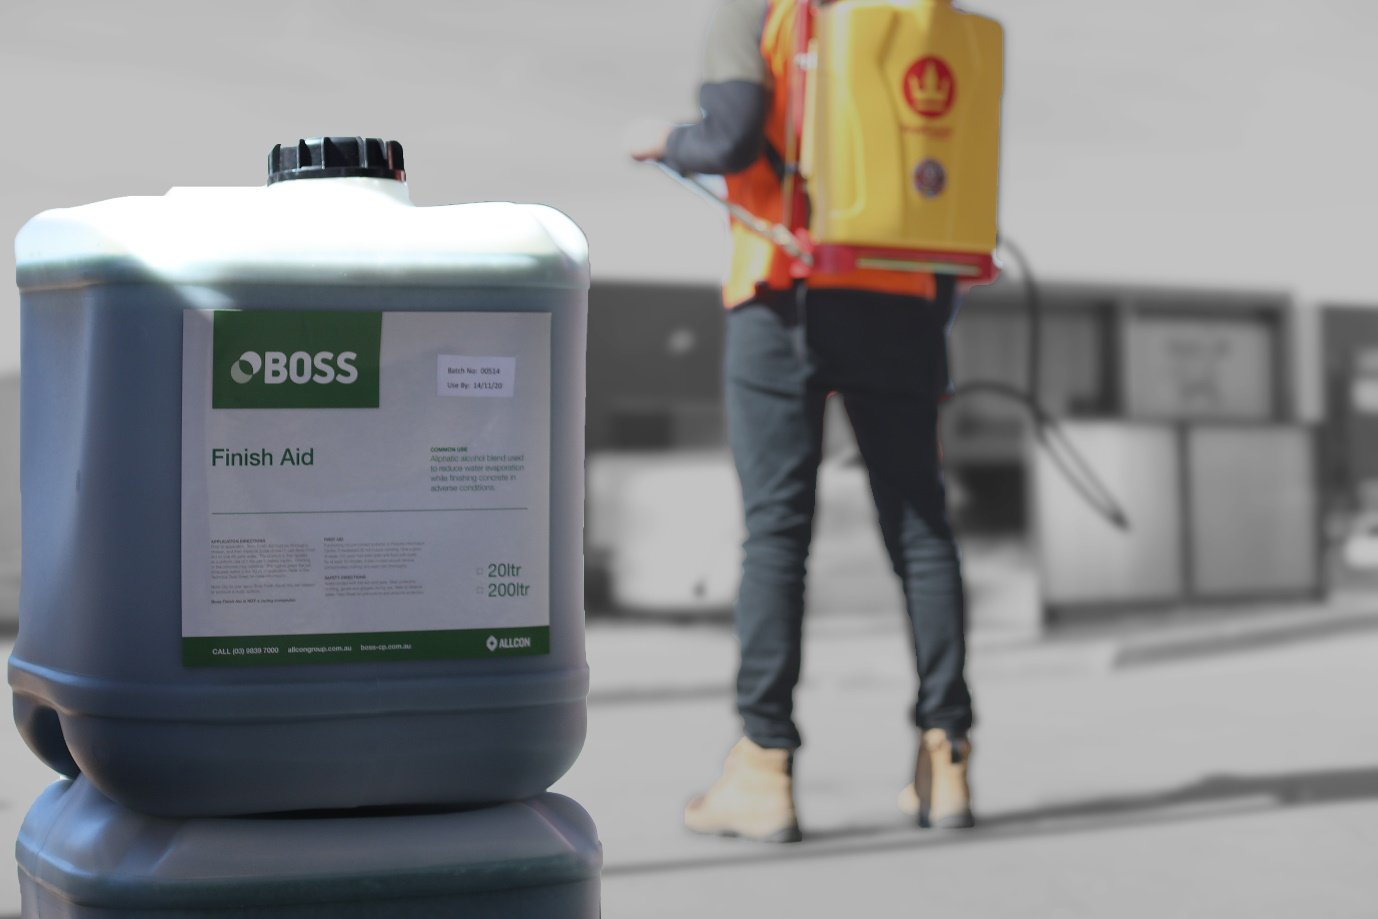 When applied to freshly laid concrete, aliphatic alcohol retards or reduces water evaporation by up to 80% during the critical stages of the initial set.